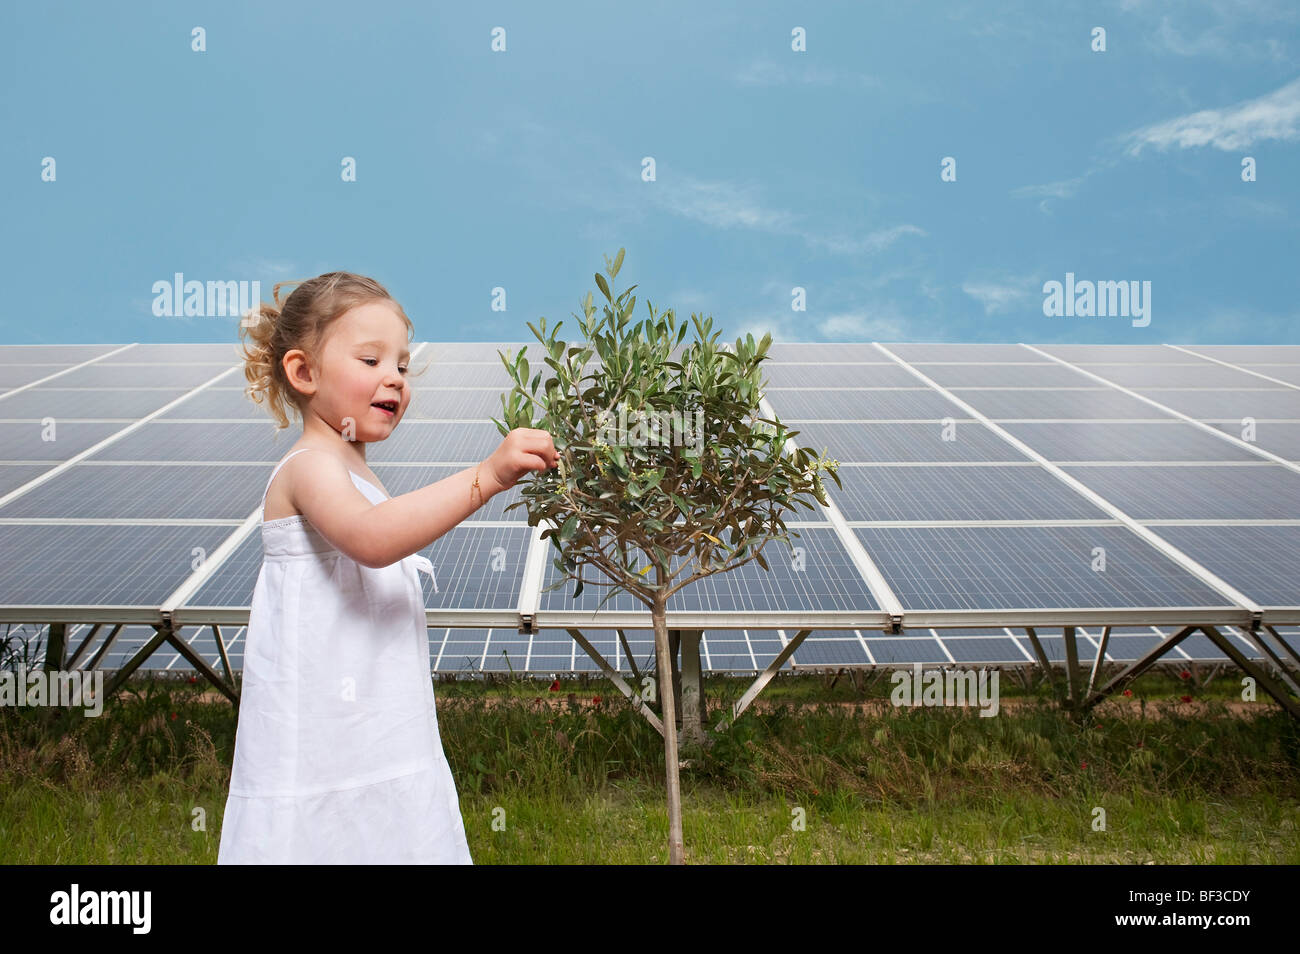 girl and tree in front of solar panel - Stock Image